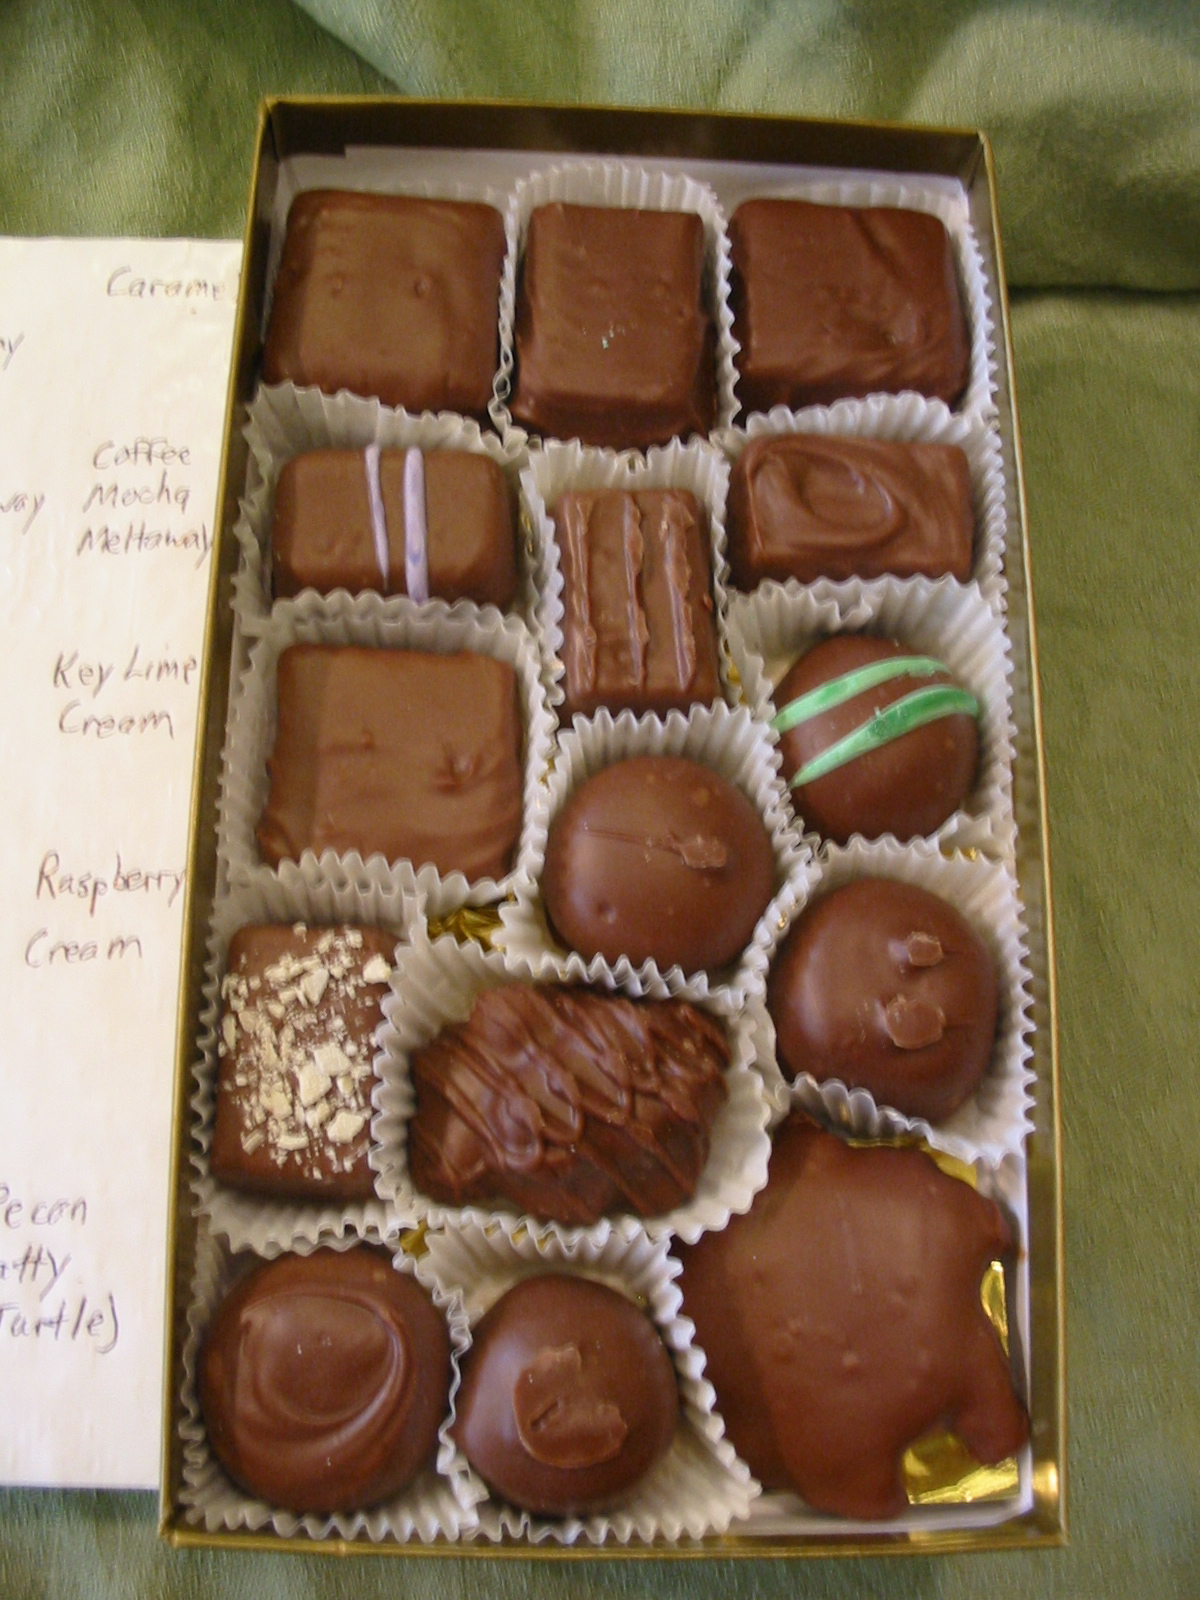 The Chocolate Cult: Early Birthday Gifts 2011